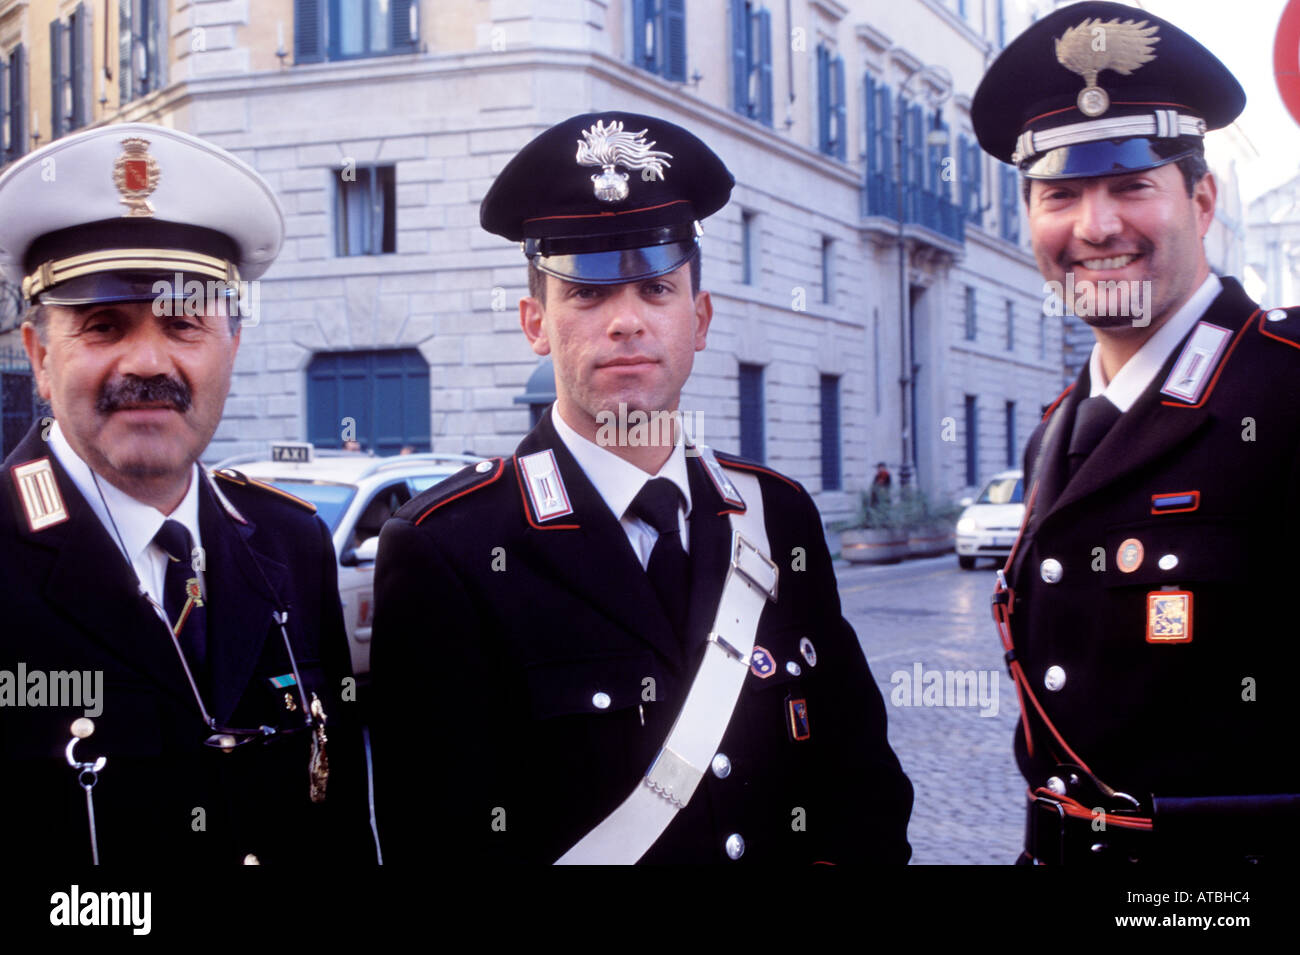 Rome Police Department >> Carabinieri or Police in Rome, Italy Stock Photo: 5309891 - Alamy